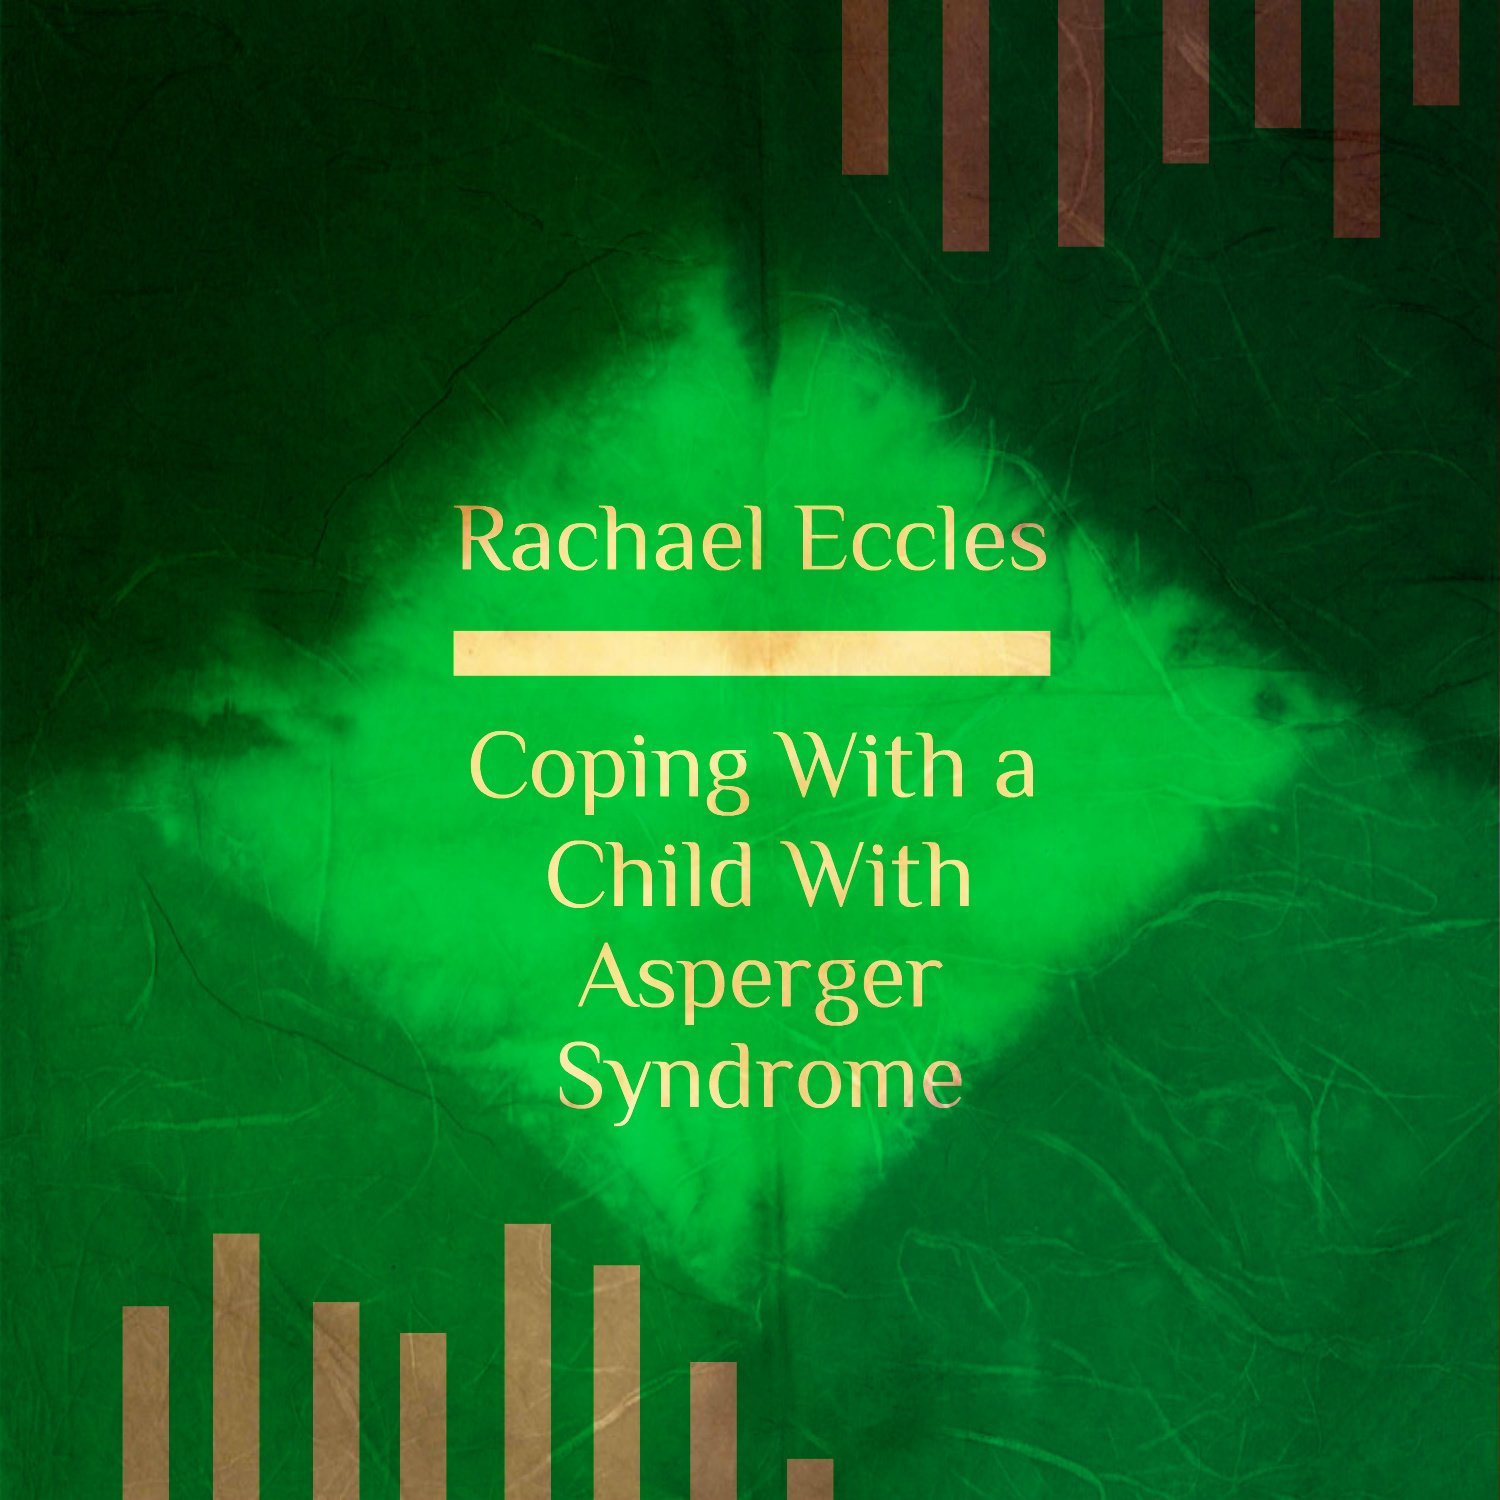 Coping with a child with Asperger syndrome, self hypnosis hypnotherapy CD